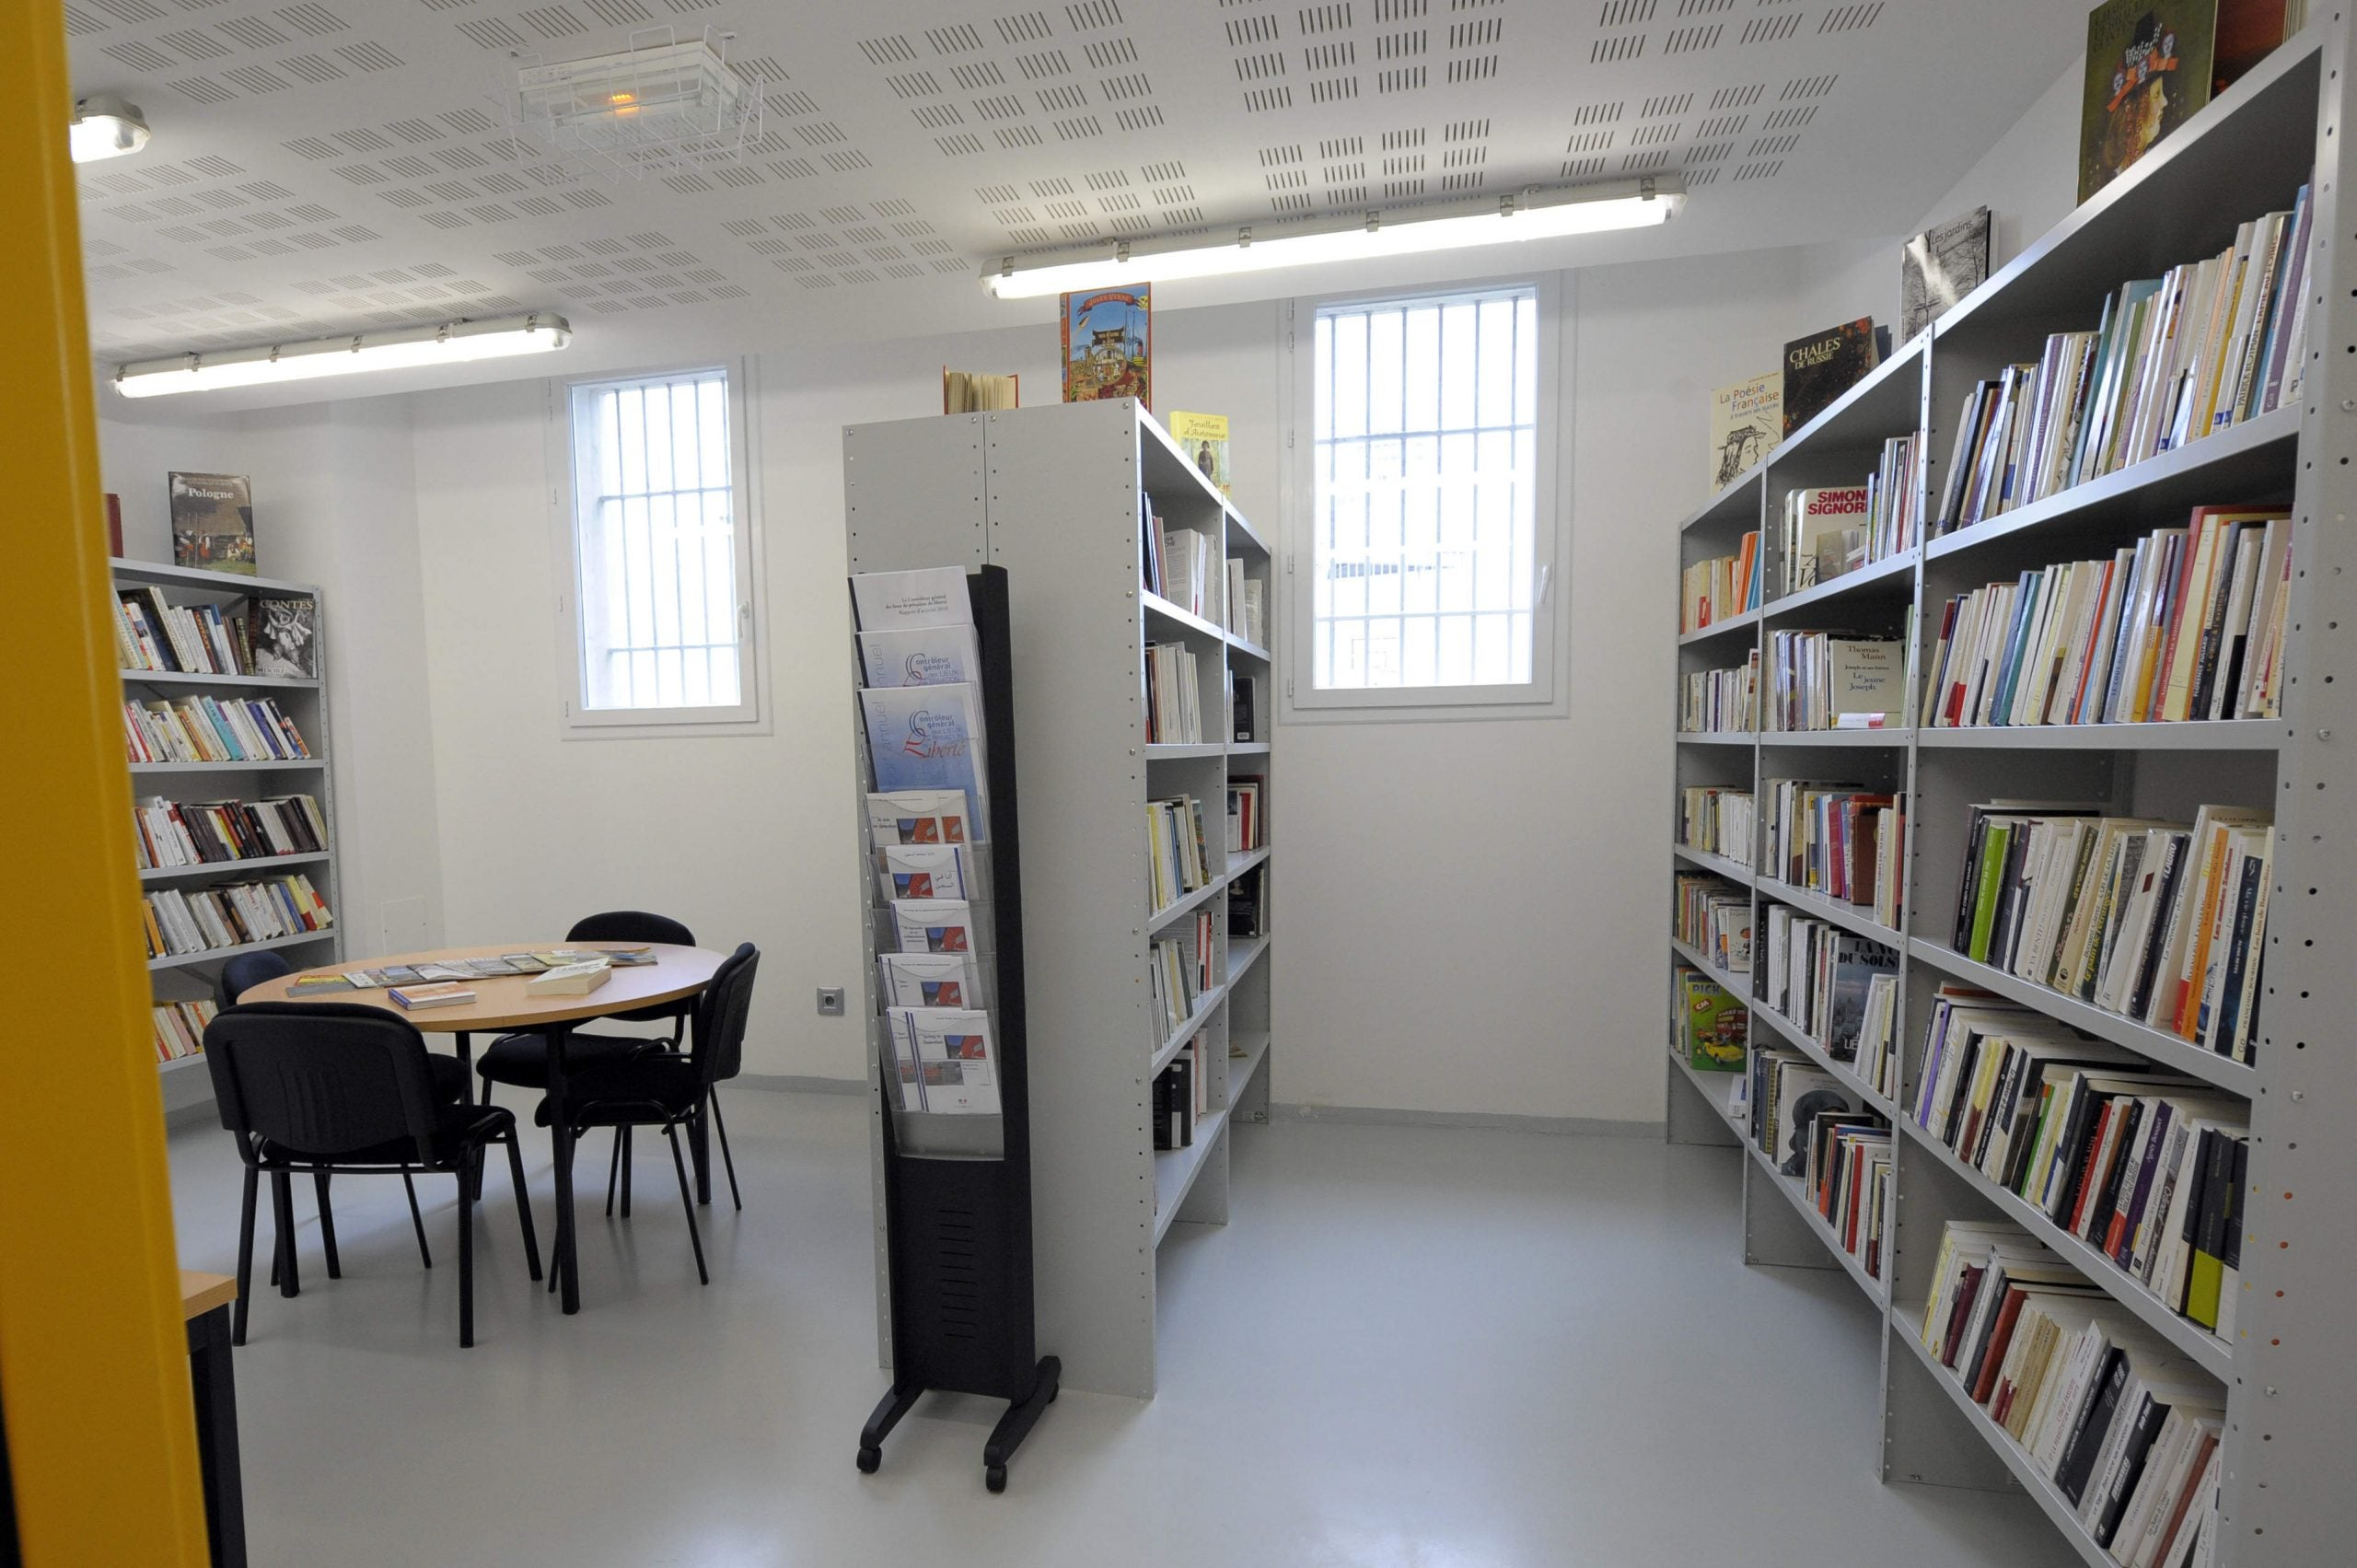 Prisoners are allowed to receive books again – but why are literacy rates in prison so poor?